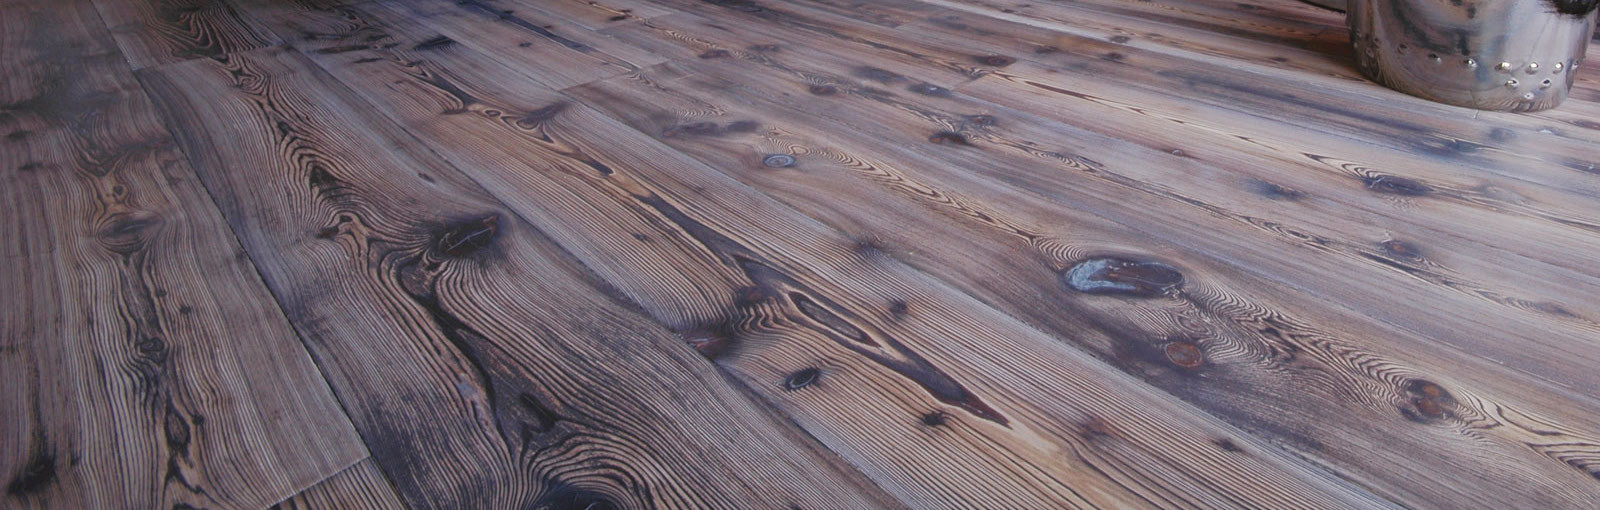 hardwood floor stains 2017 of hardwood westfloors west vancouver hardwood flooring carpet for hardwood westfloors west vancouver hardwood flooring carpet laminate floors tiles bamboo cork west vancouver flooring design center